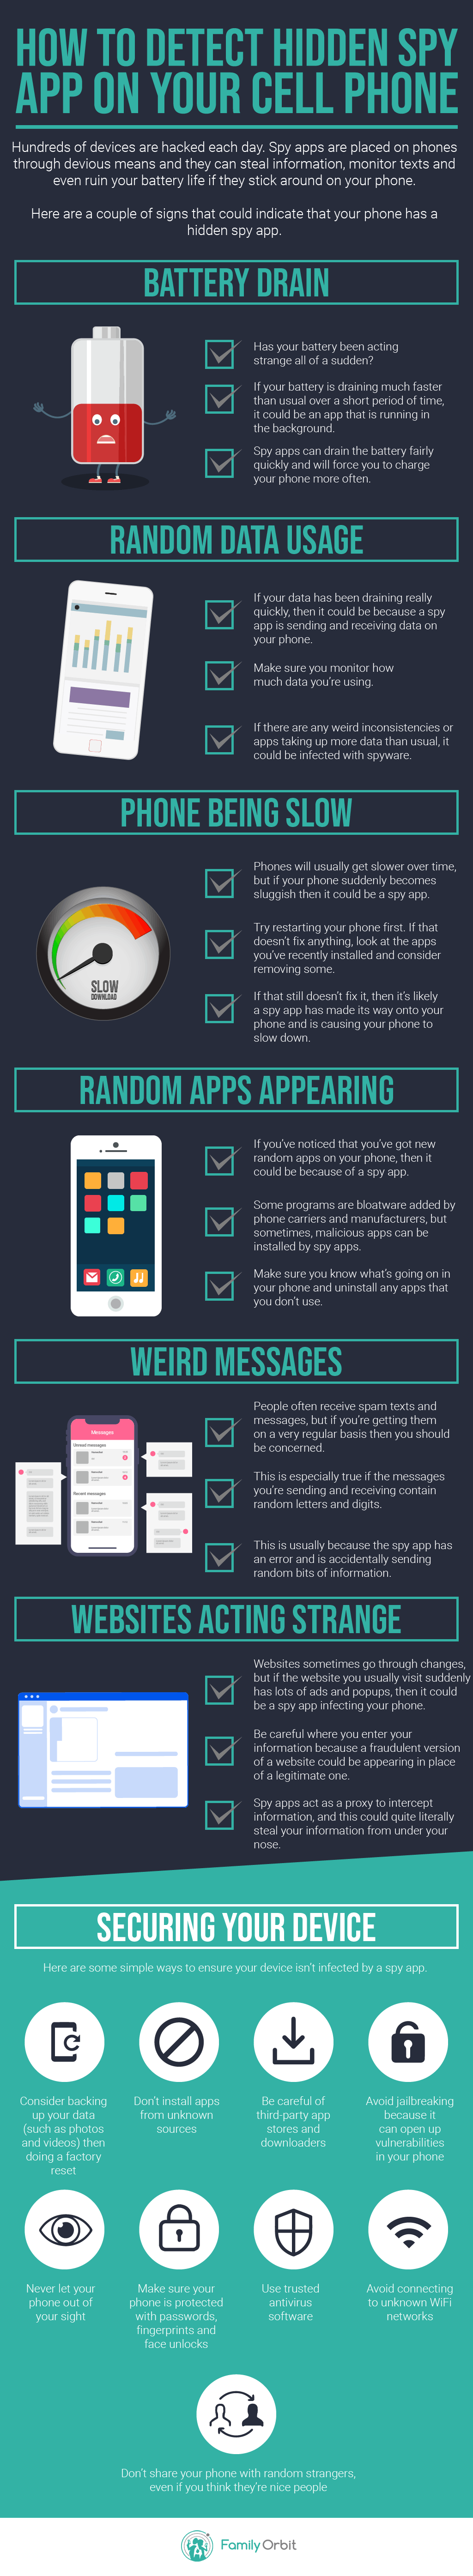 Hidden Spy App on Your Cell Phone Infographic